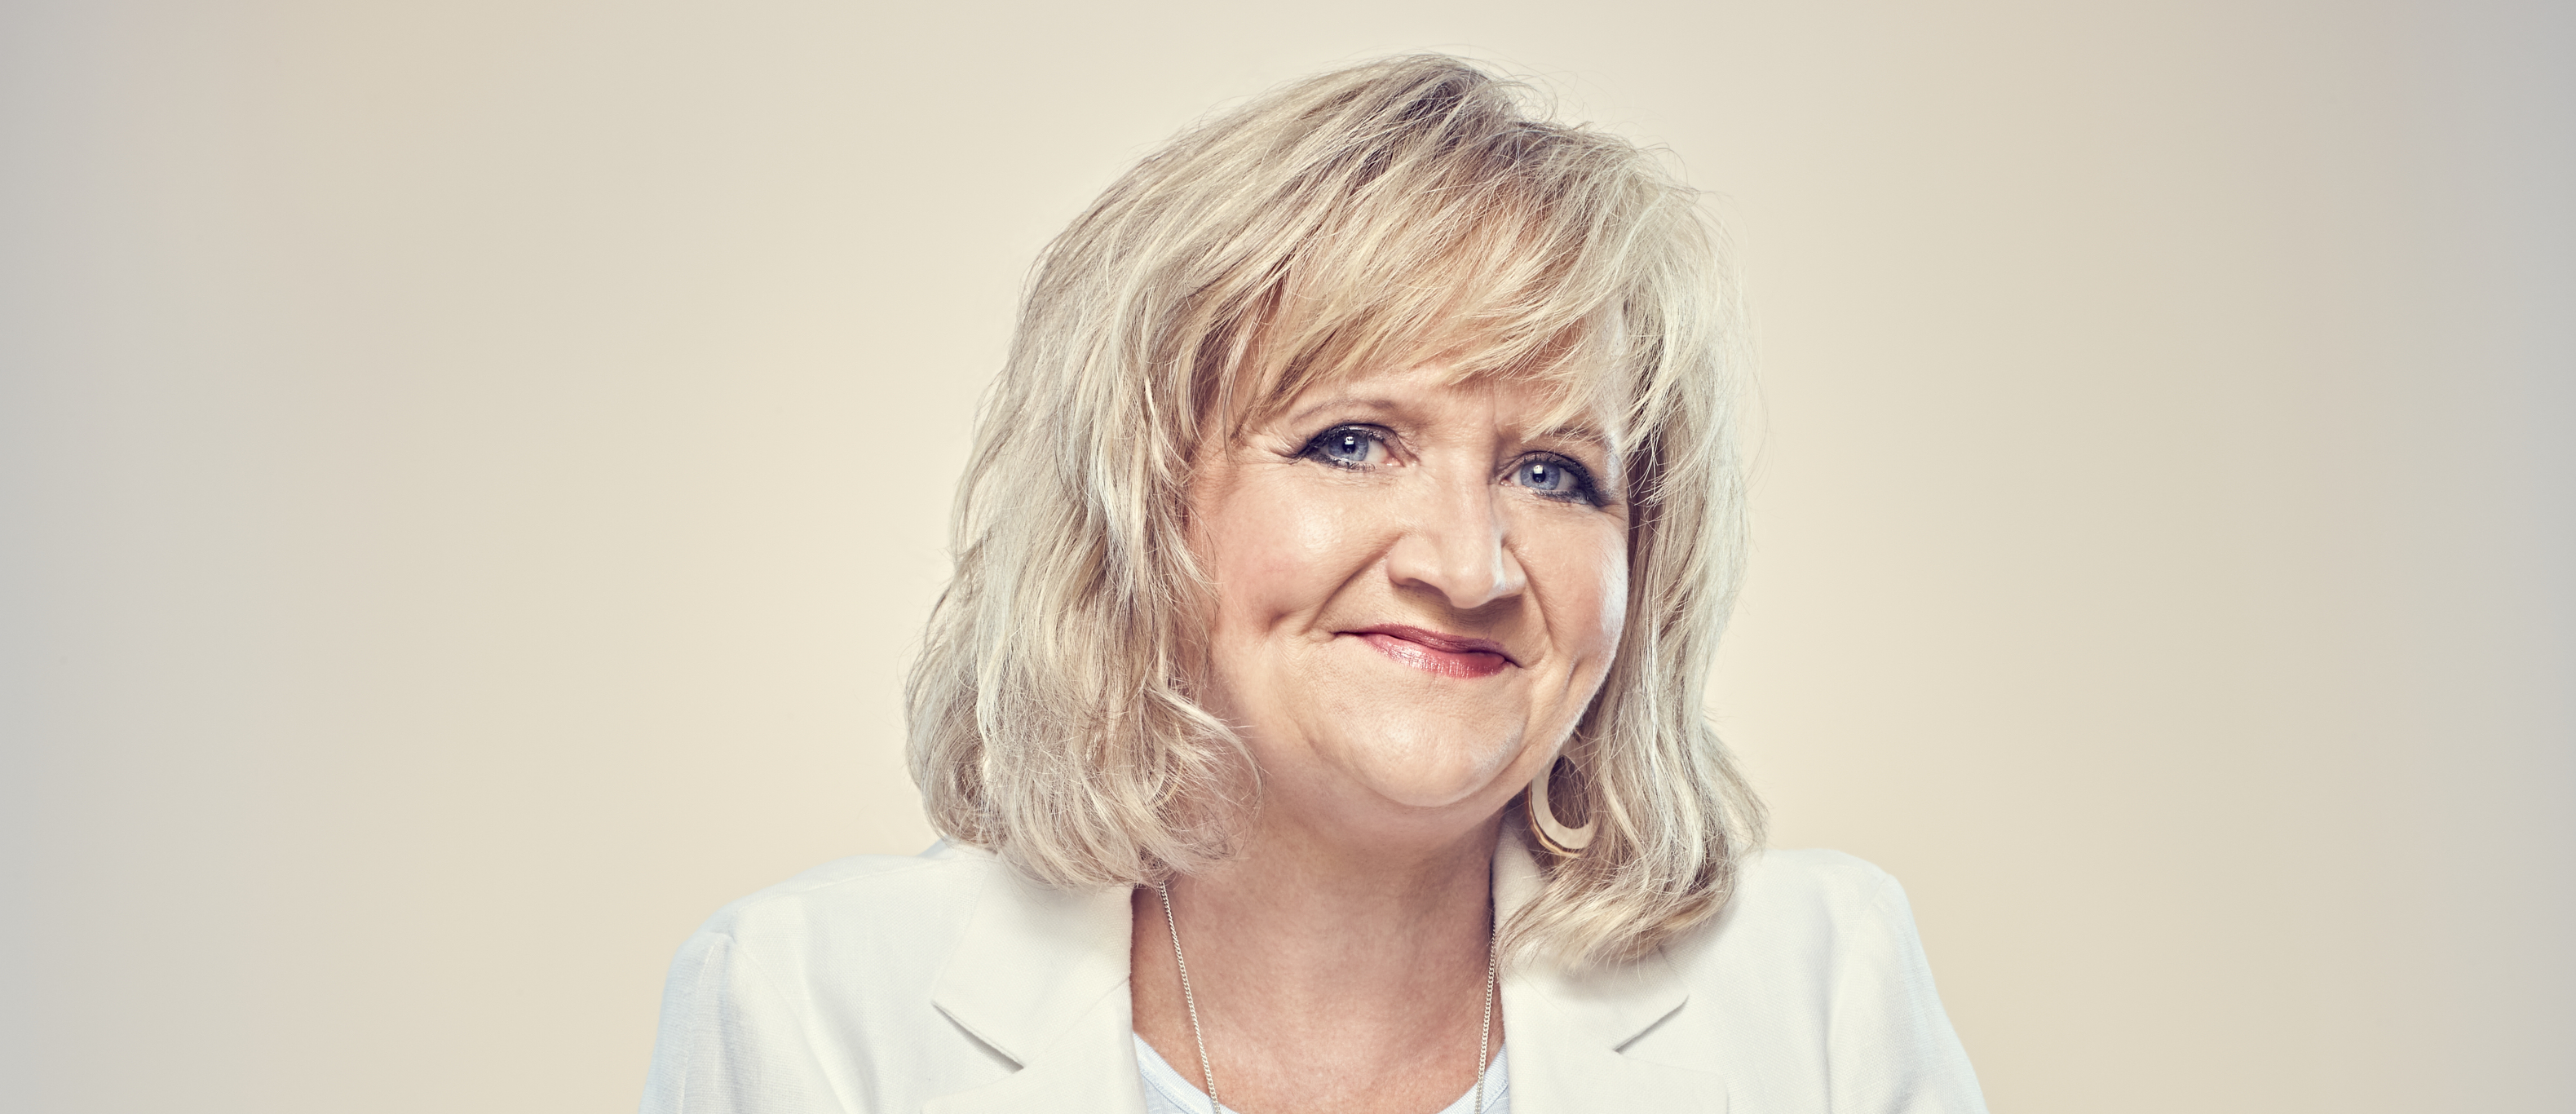 CHONDA PIERCE IS 'GETTING BACK TO FUNNY' THIS FALL